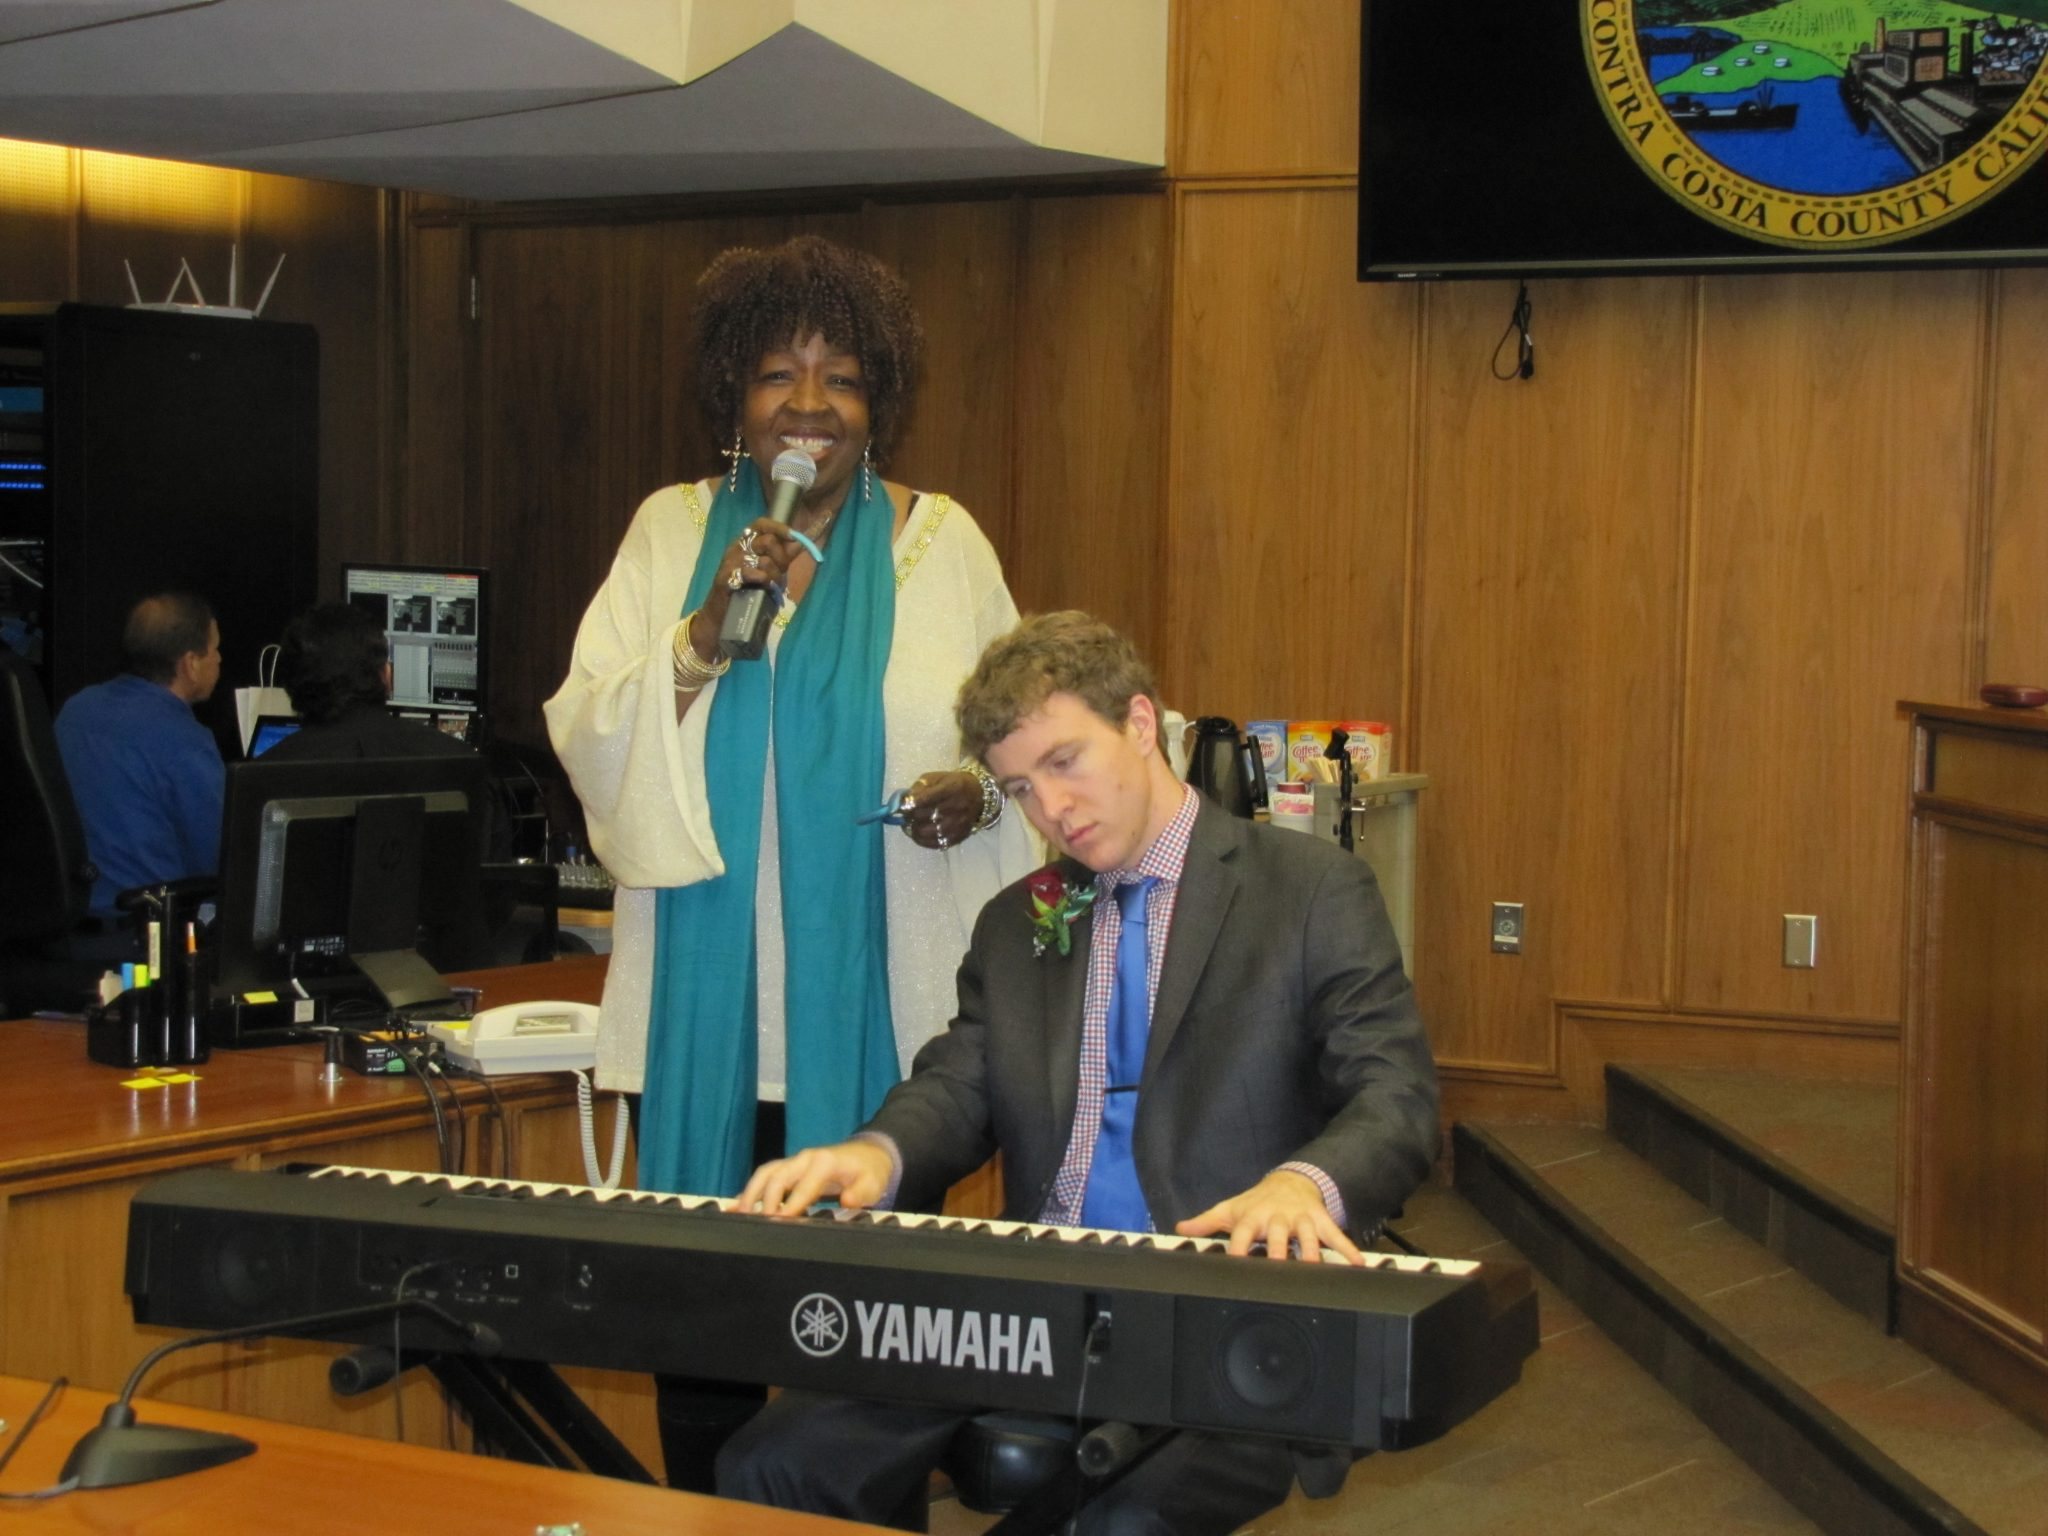 Faye Carol (at left) performed at the Dr. Martin Luther King Jr. 38th Annual Commemoration and Humanitarian of the Year Awards Tuesday, Jan. 19, 2016, accompanied by Joe Warner on the piano.  The awards ceremony was held in the Contra Costa County Board of Supervisors chambers. (HANNAH HATCH / Martinez Tribune)